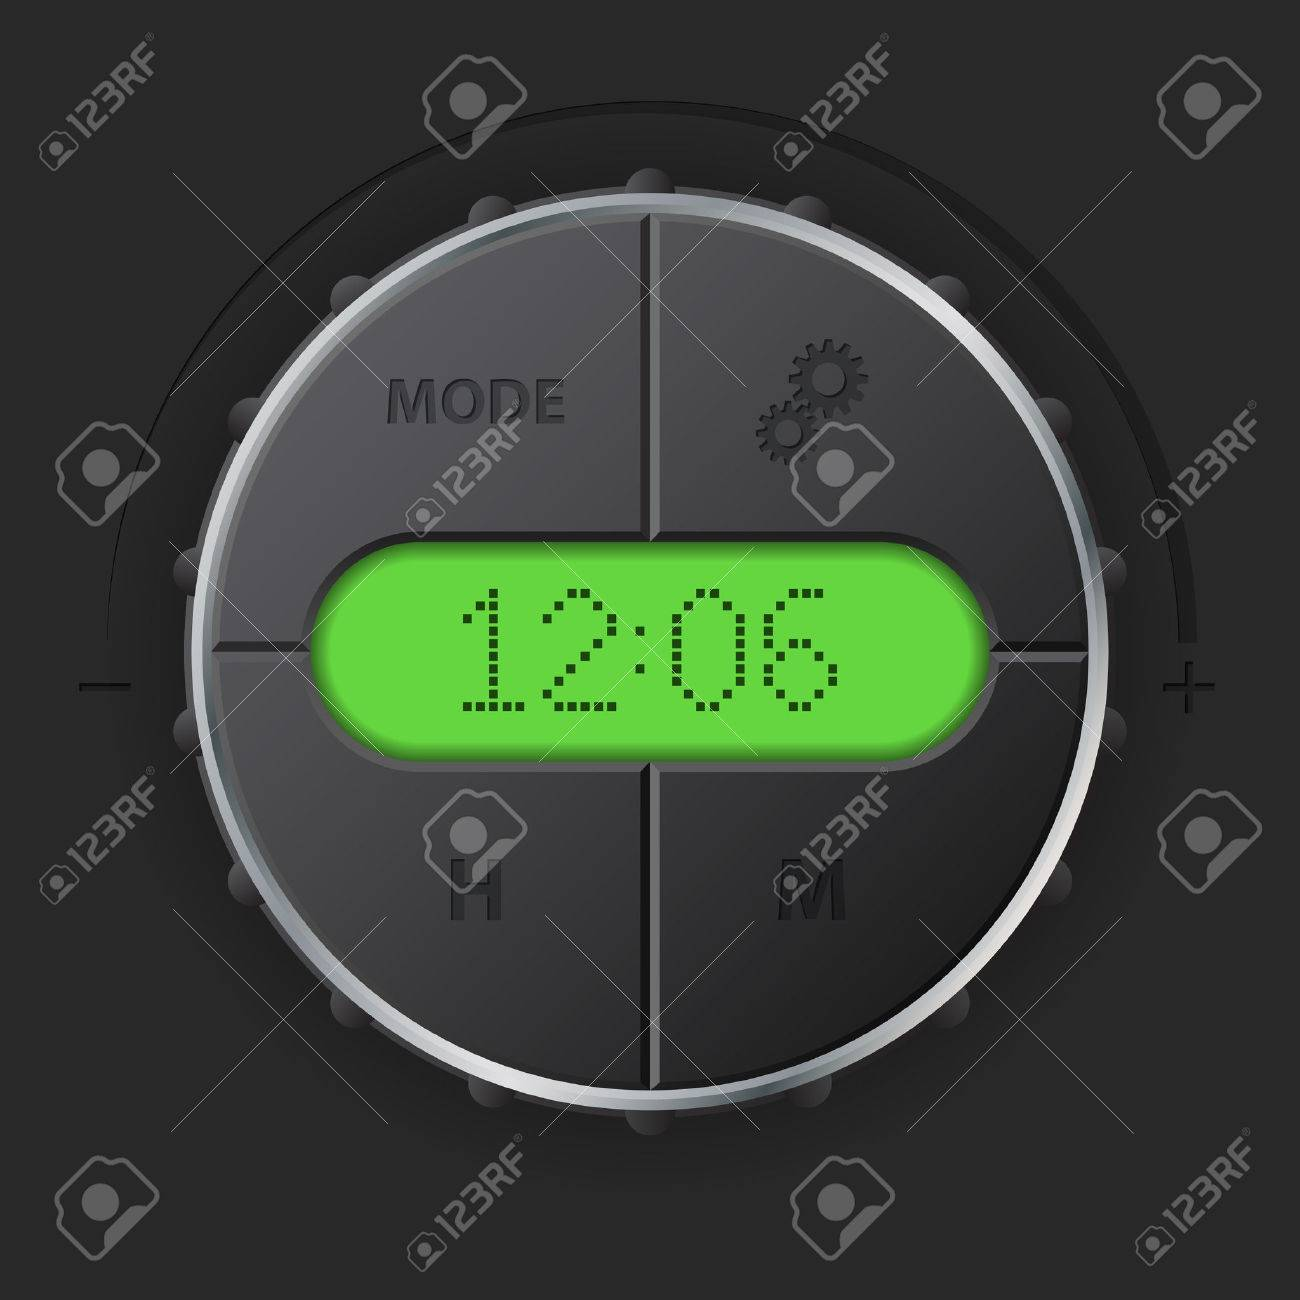 Digital clock with green lcd and setting buttons for car dashboard digital clock with green lcd and setting buttons for car dashboard stock vector 56449852 biocorpaavc Images